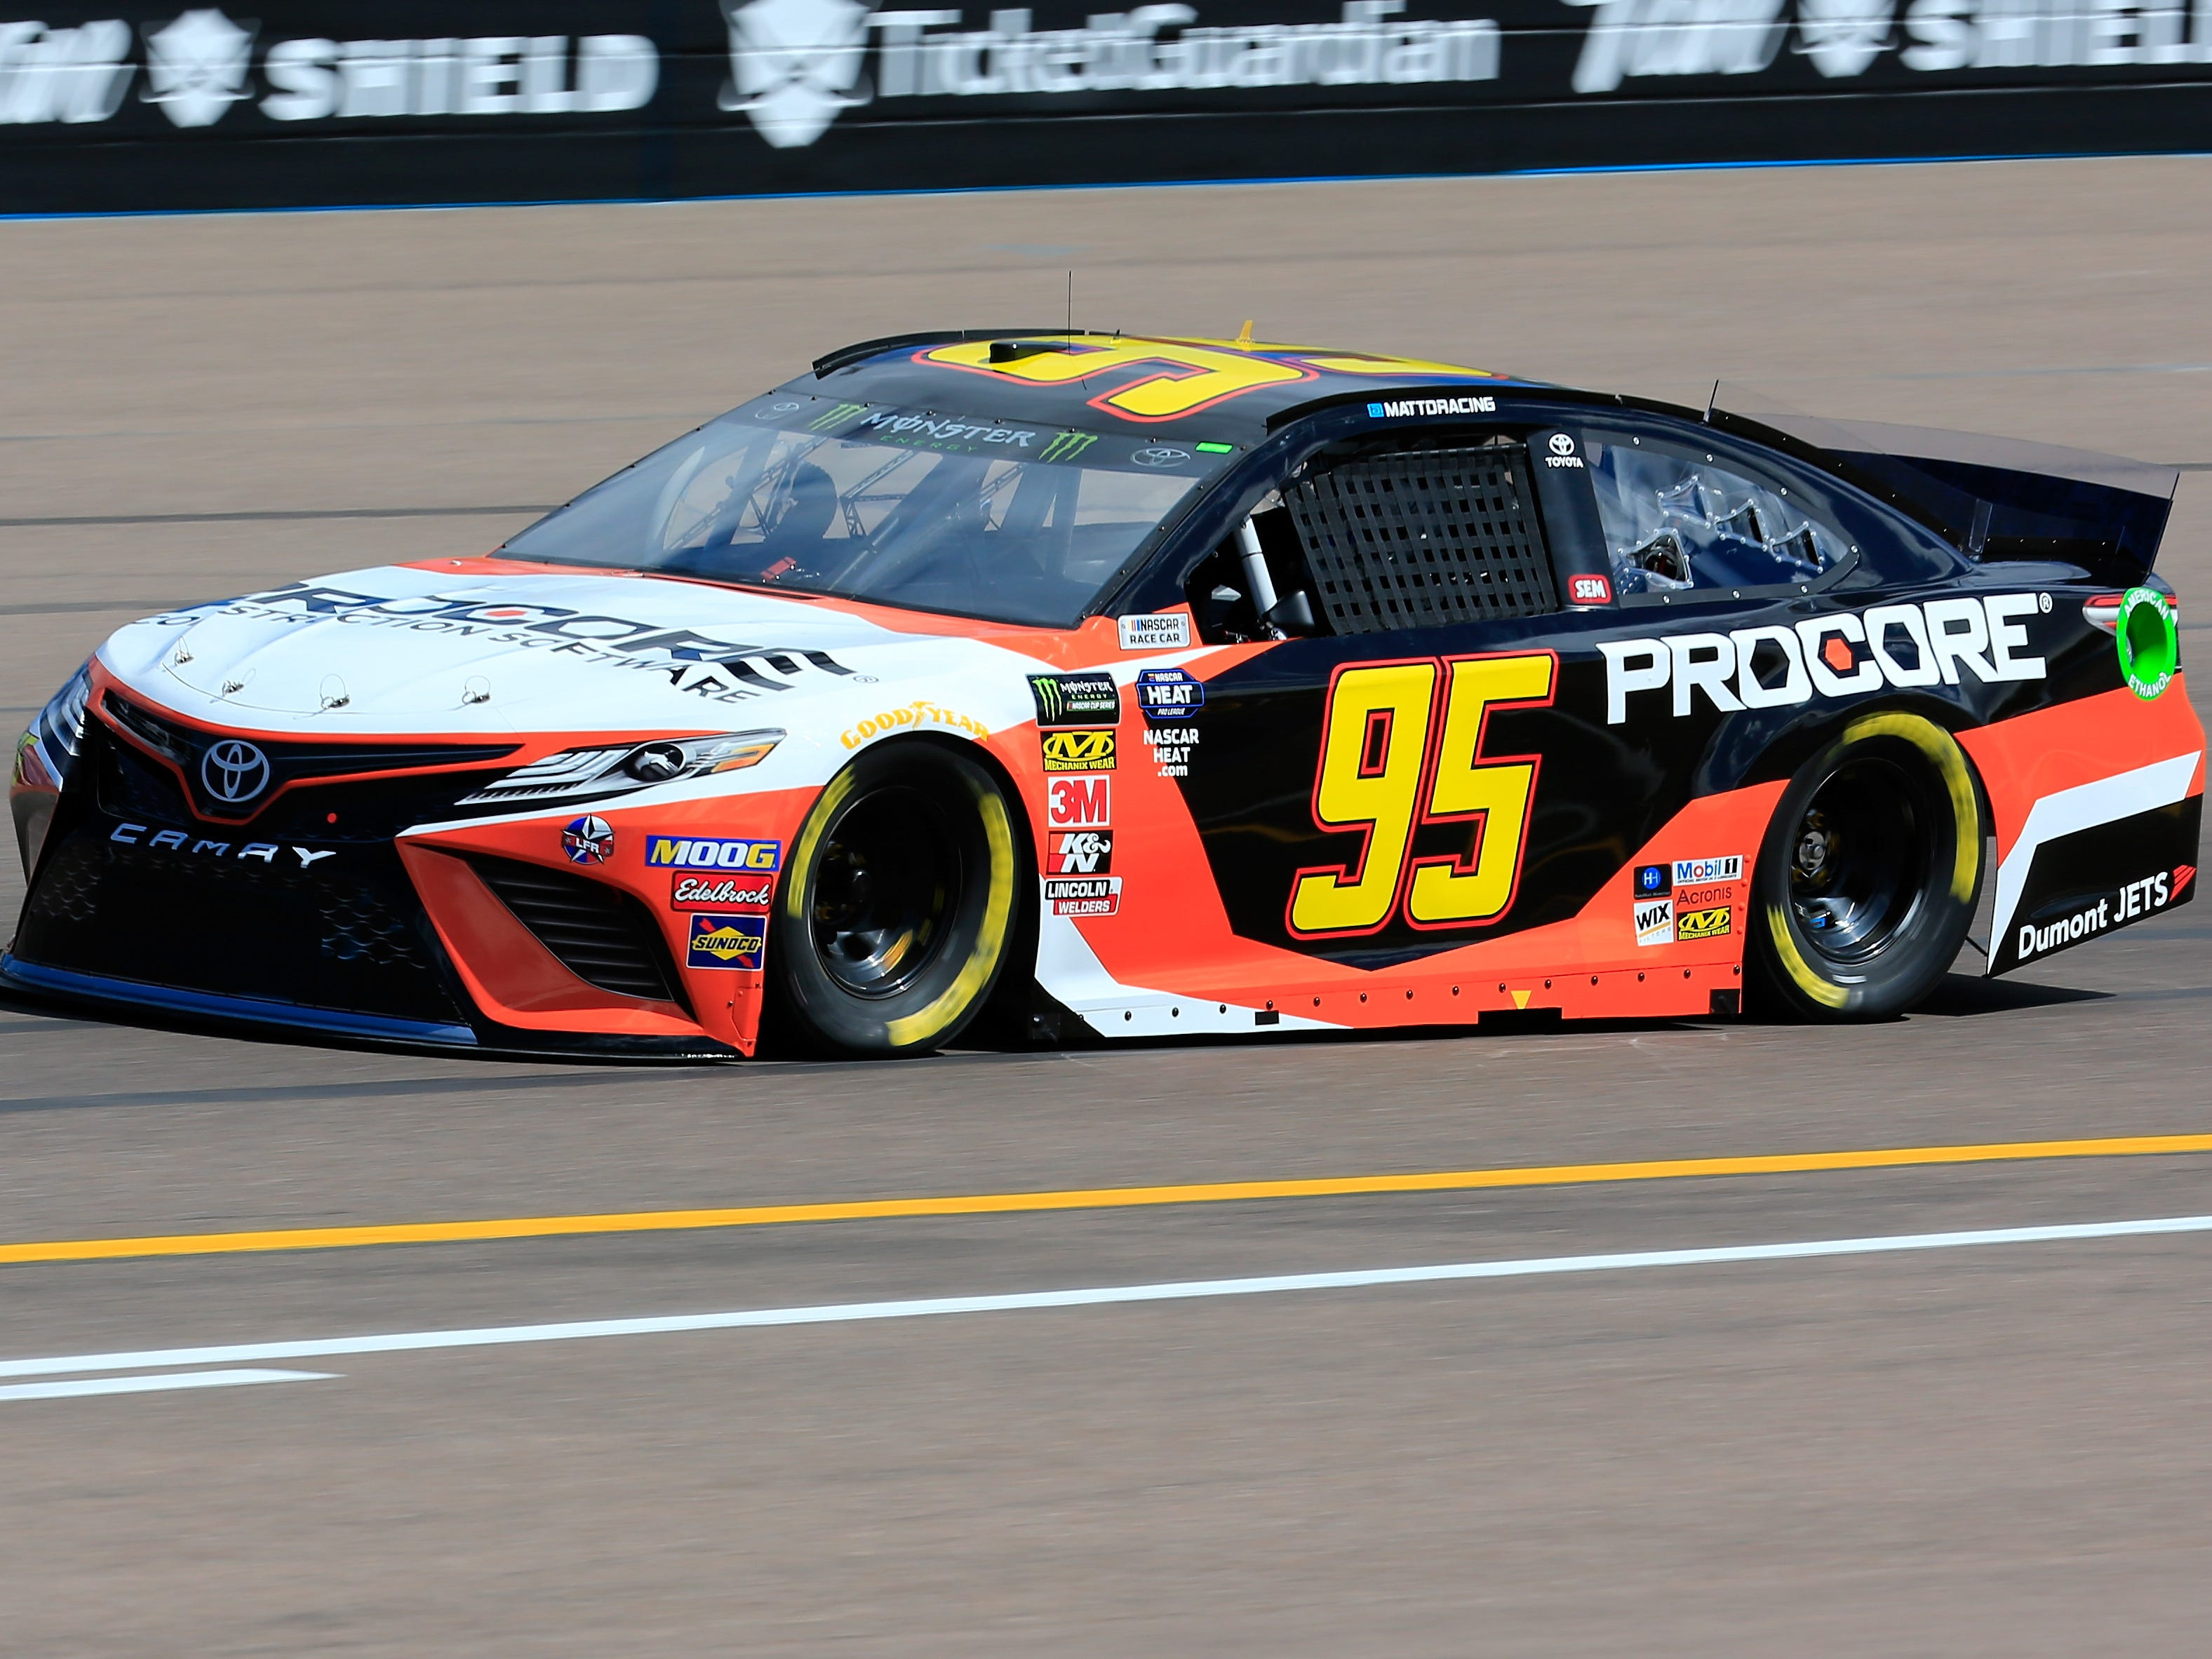 AVONDALE, AZ - MARCH 08: Matt DiBenedetto, driver of the #95 Procore Toyota, practices for the Monster Energy NASCAR Cup Series TicketGuardian 500 at ISM Raceway on March 8, 2019 in Avondale, Arizona.